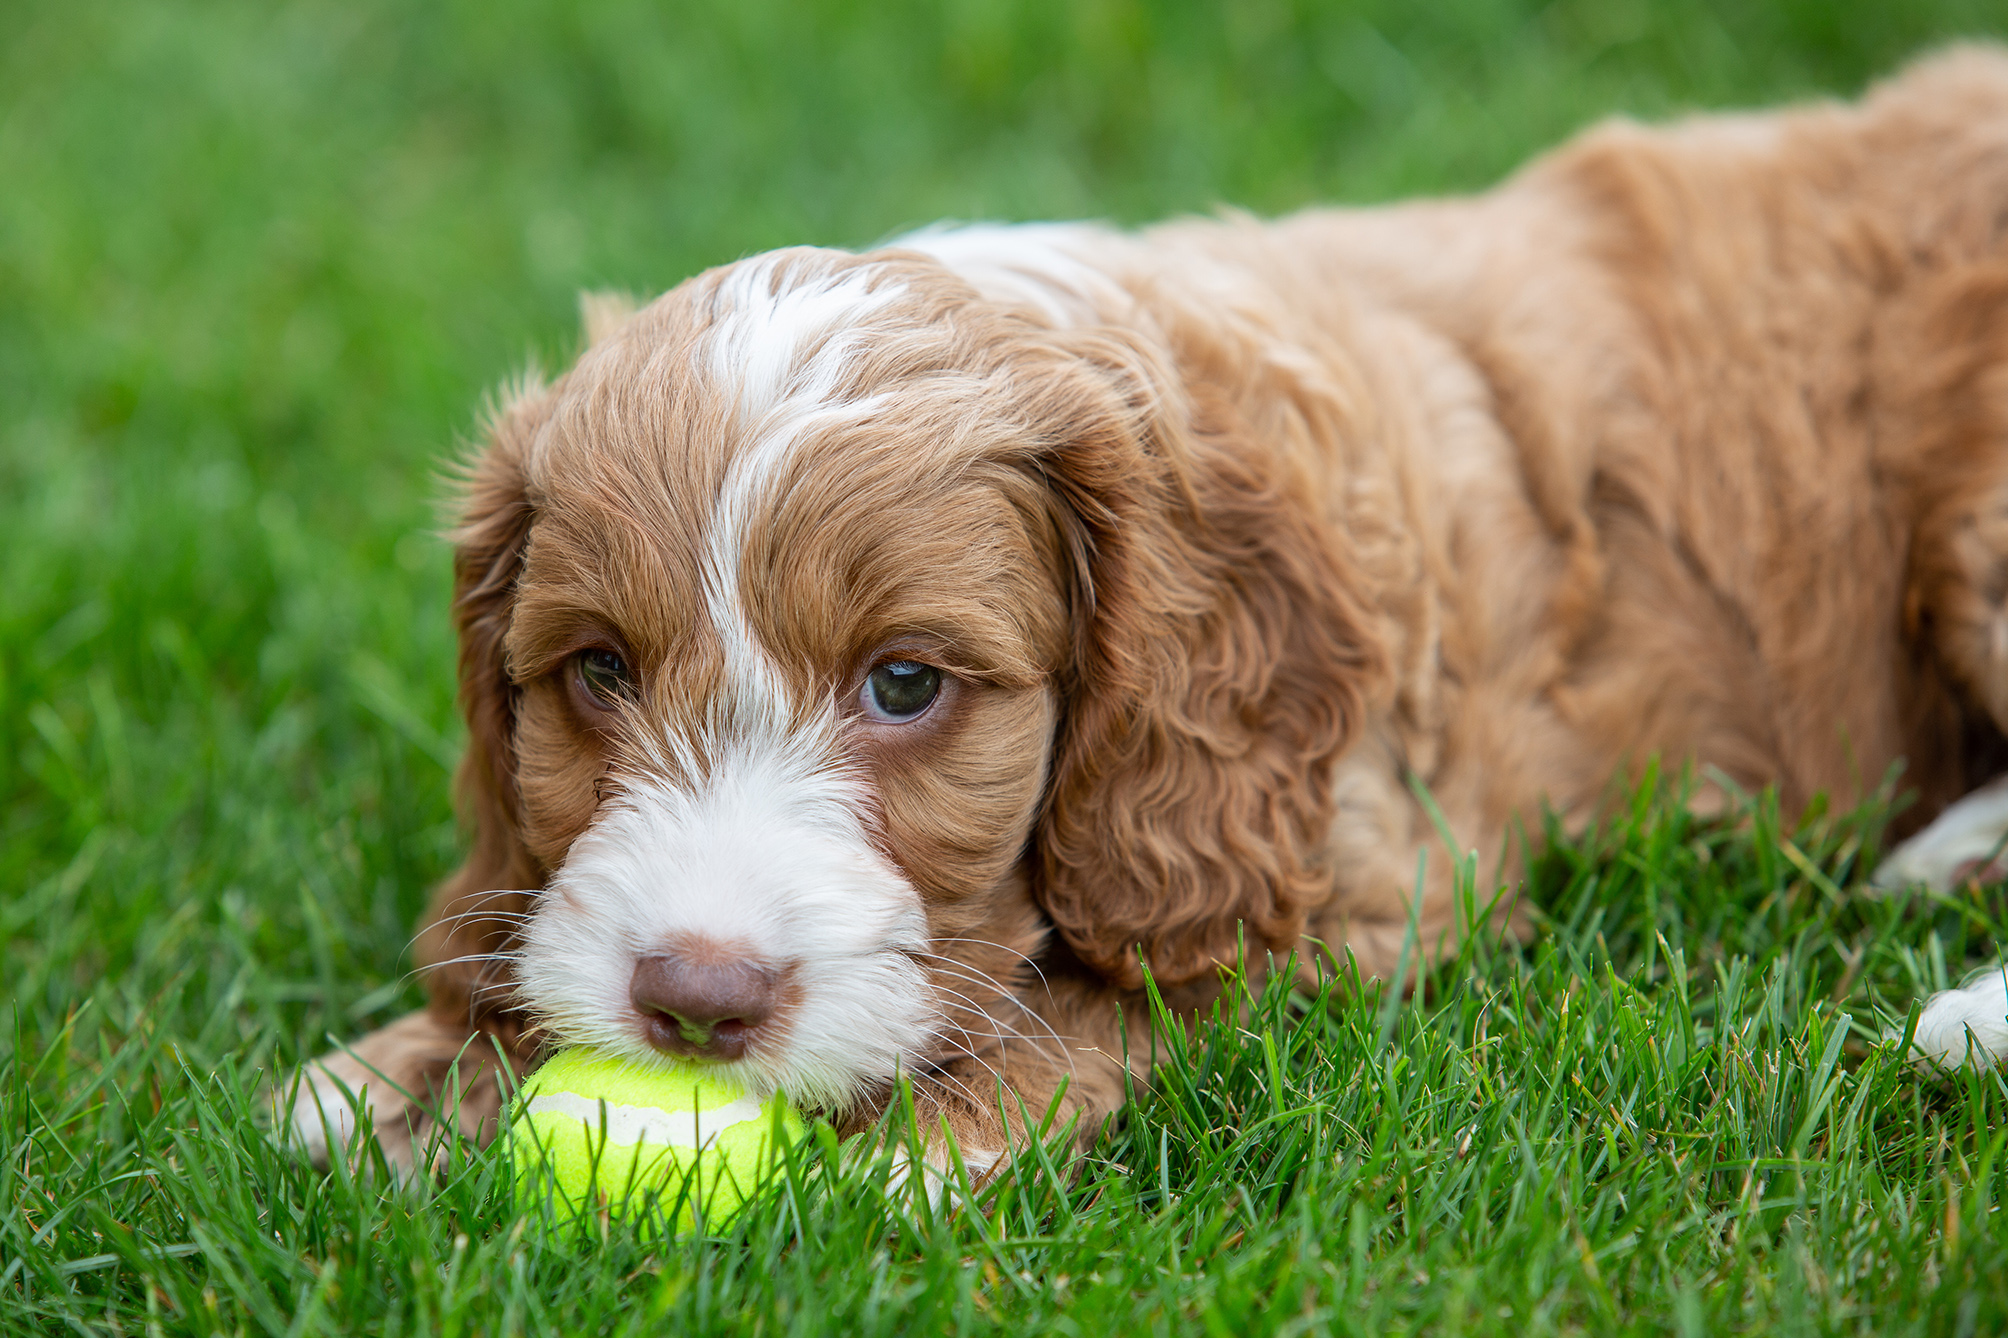 puppy and ball on grass